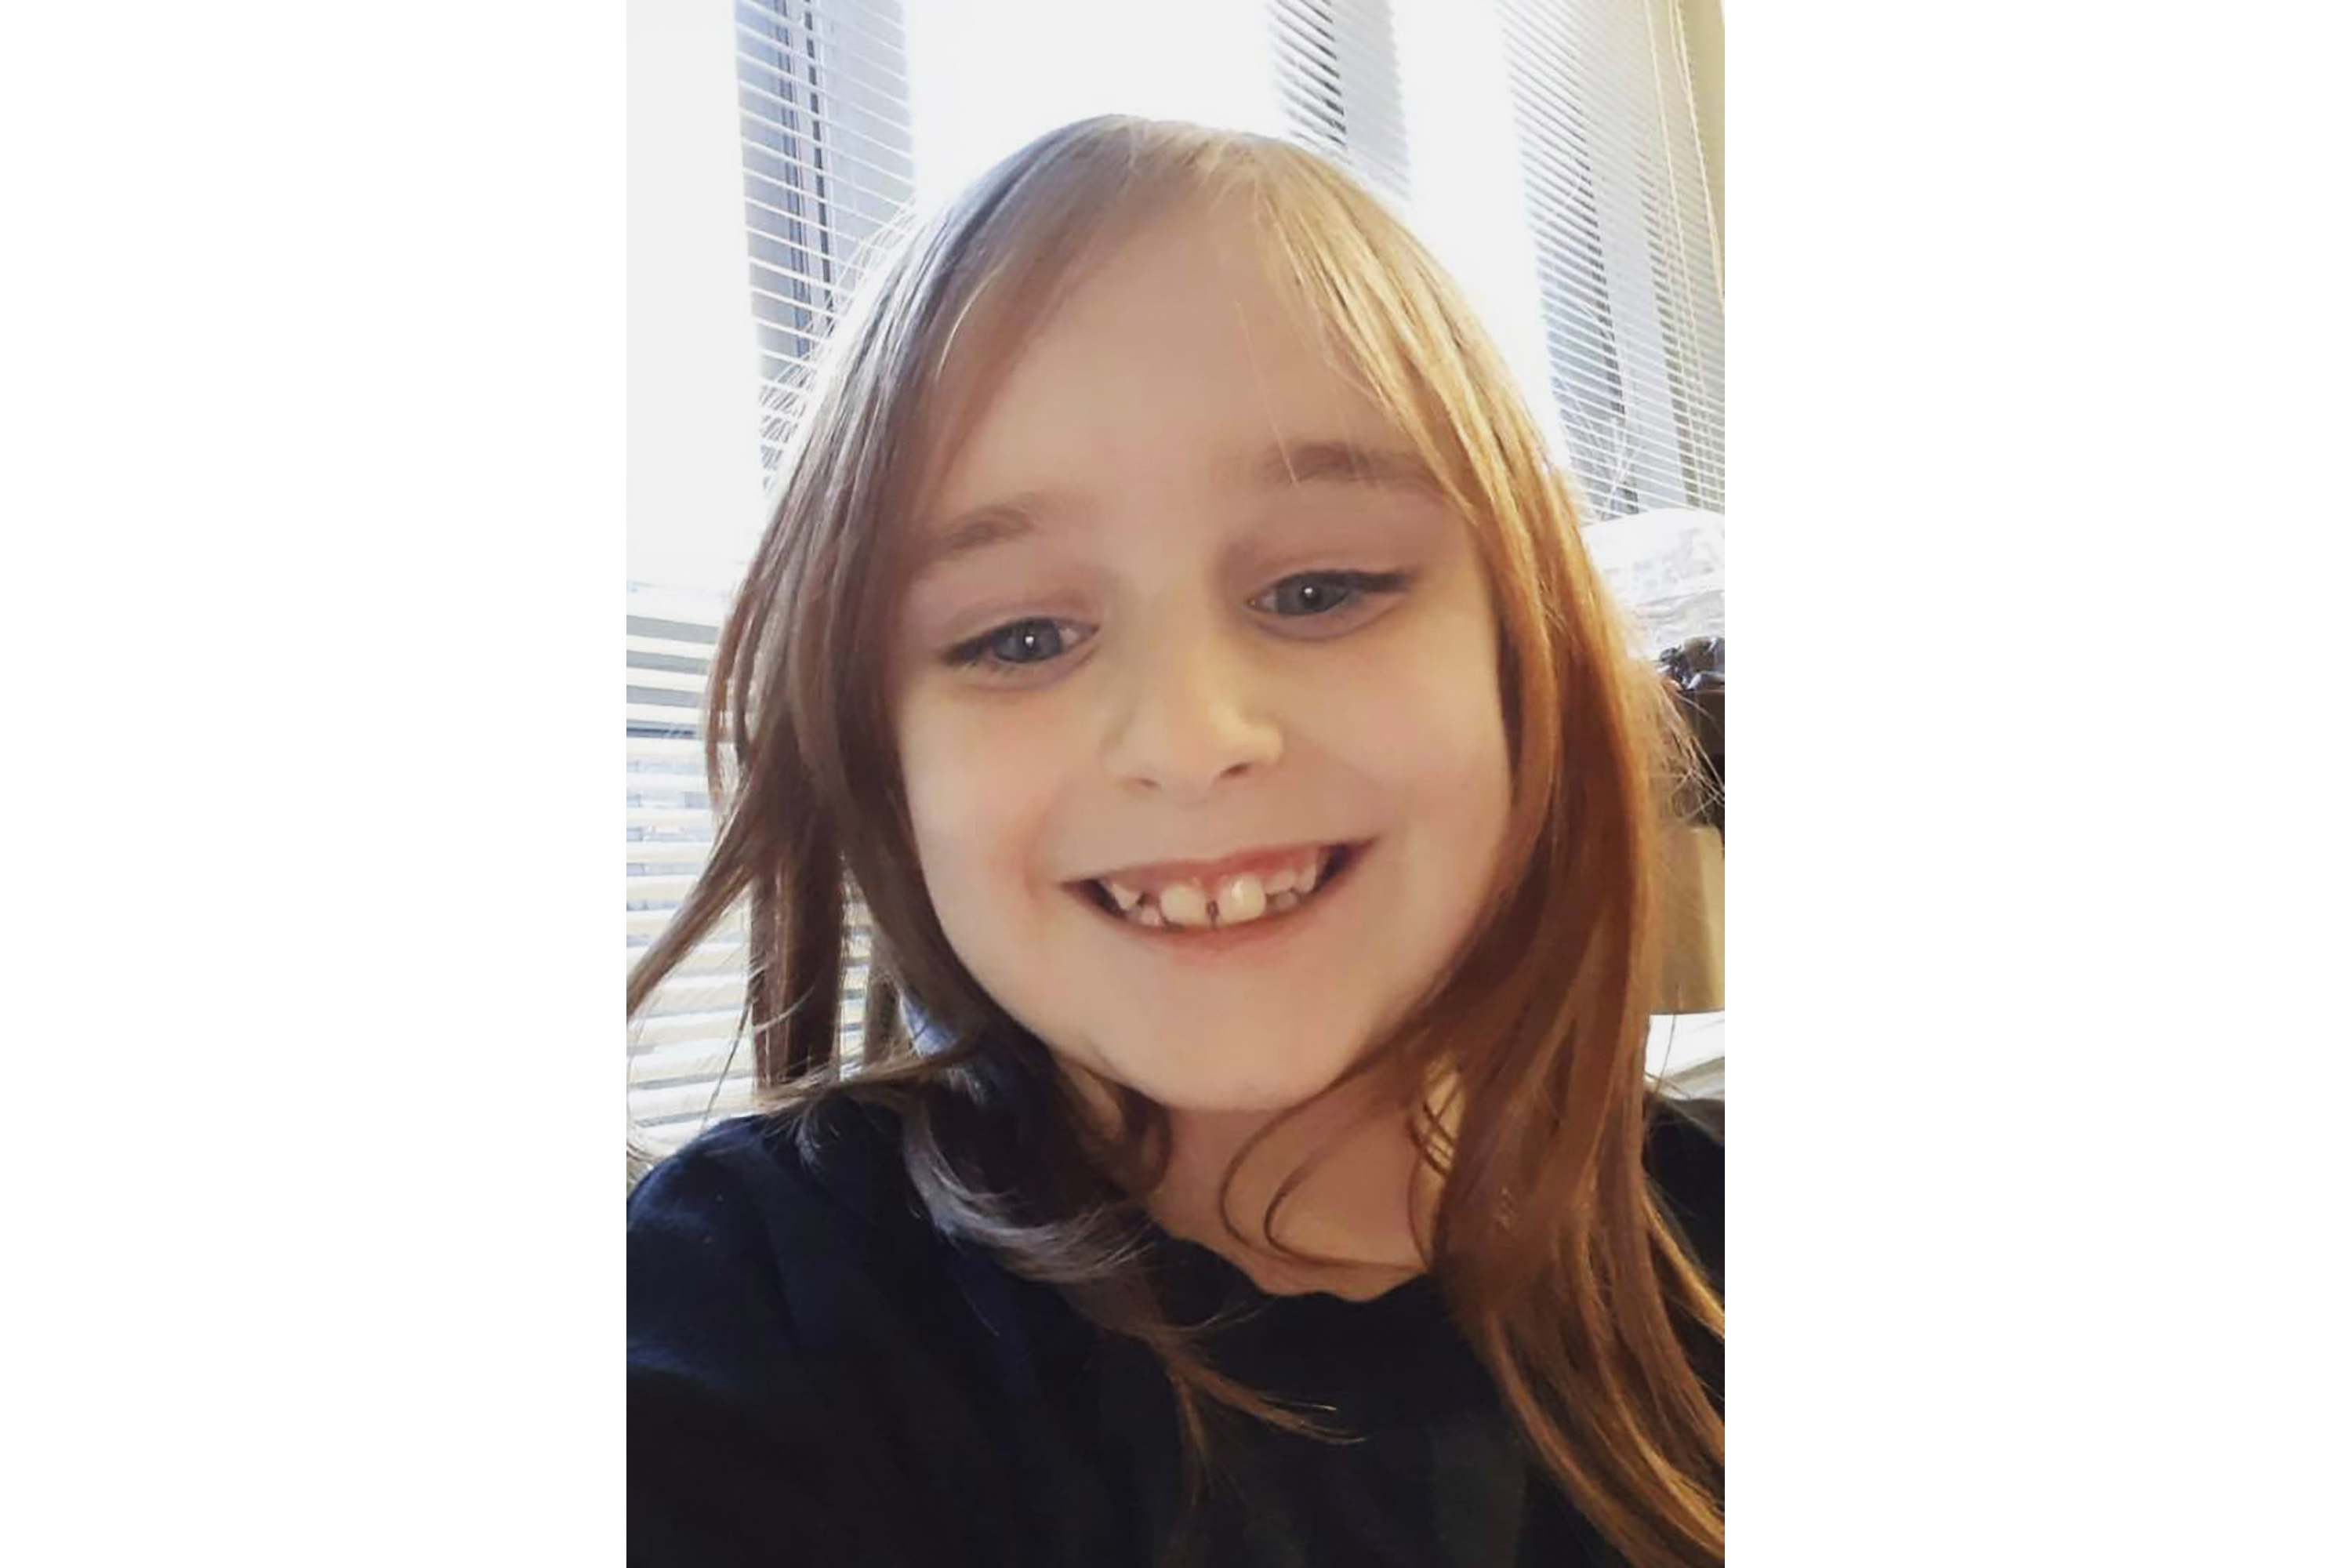 This undated photo provided by the Cayce Department of Public Safety shows Faye Marie Swetlik, who has been missing since shortly after getting off her school bus near her South Carolina home on Feb. 10, 2020.